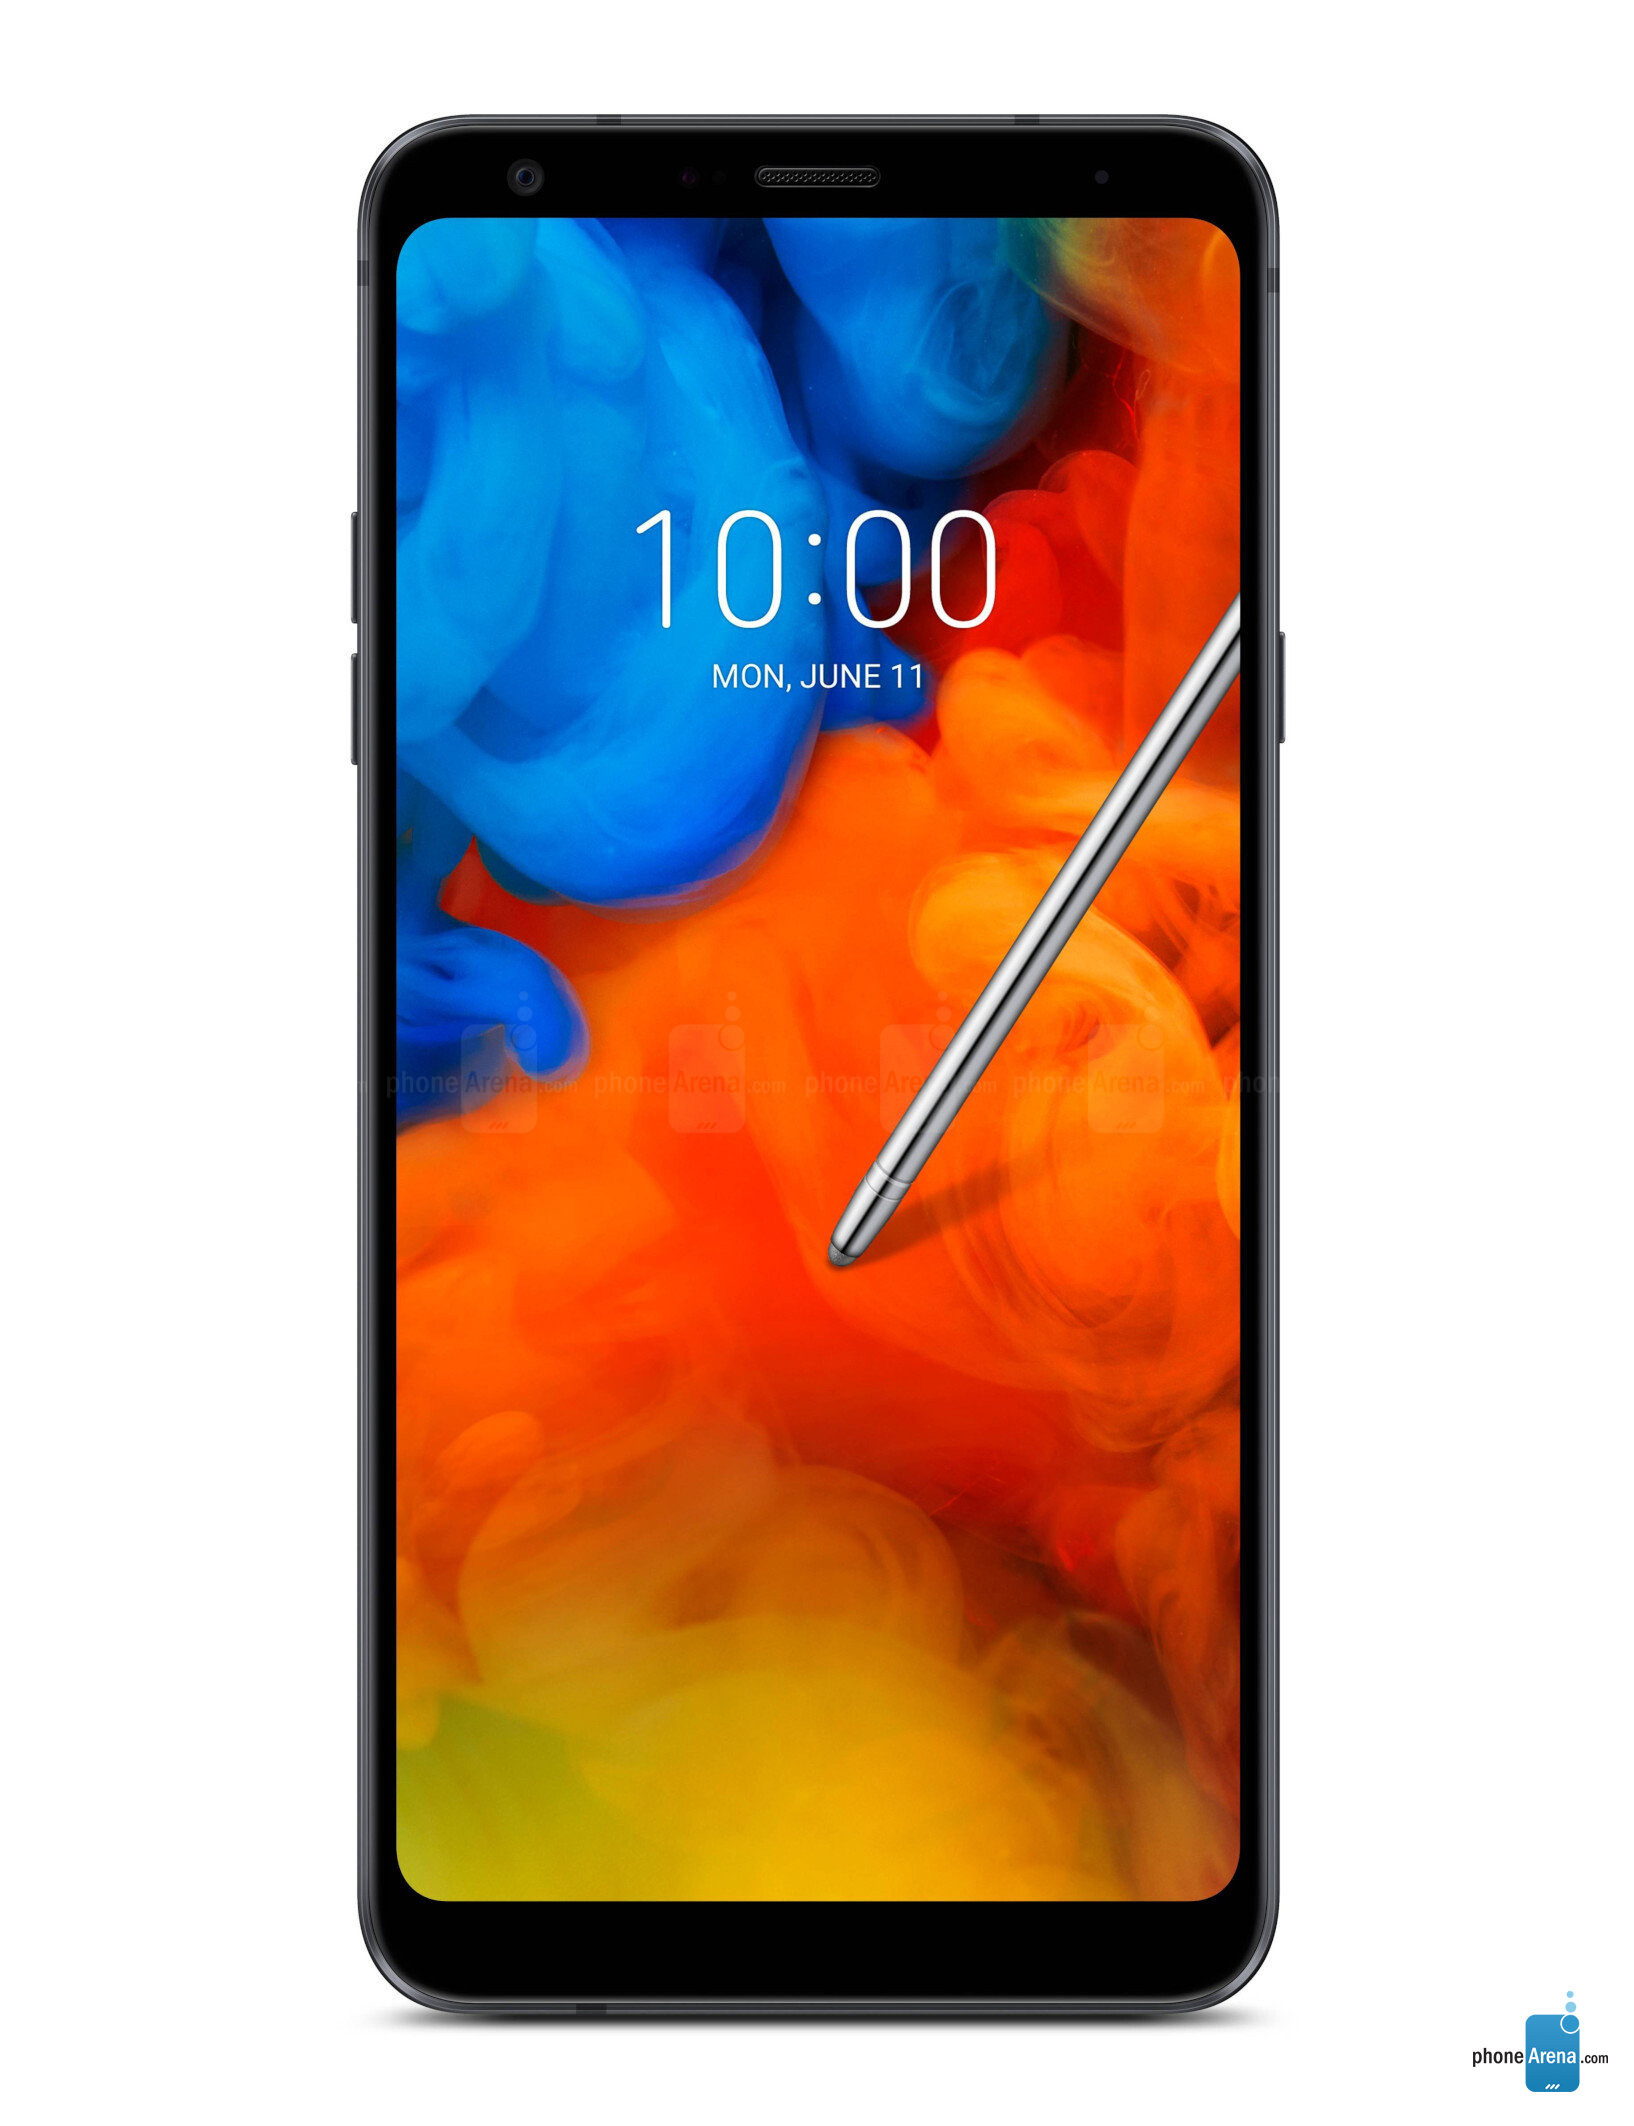 LG Stylo 4 price and release date announced by Cricket